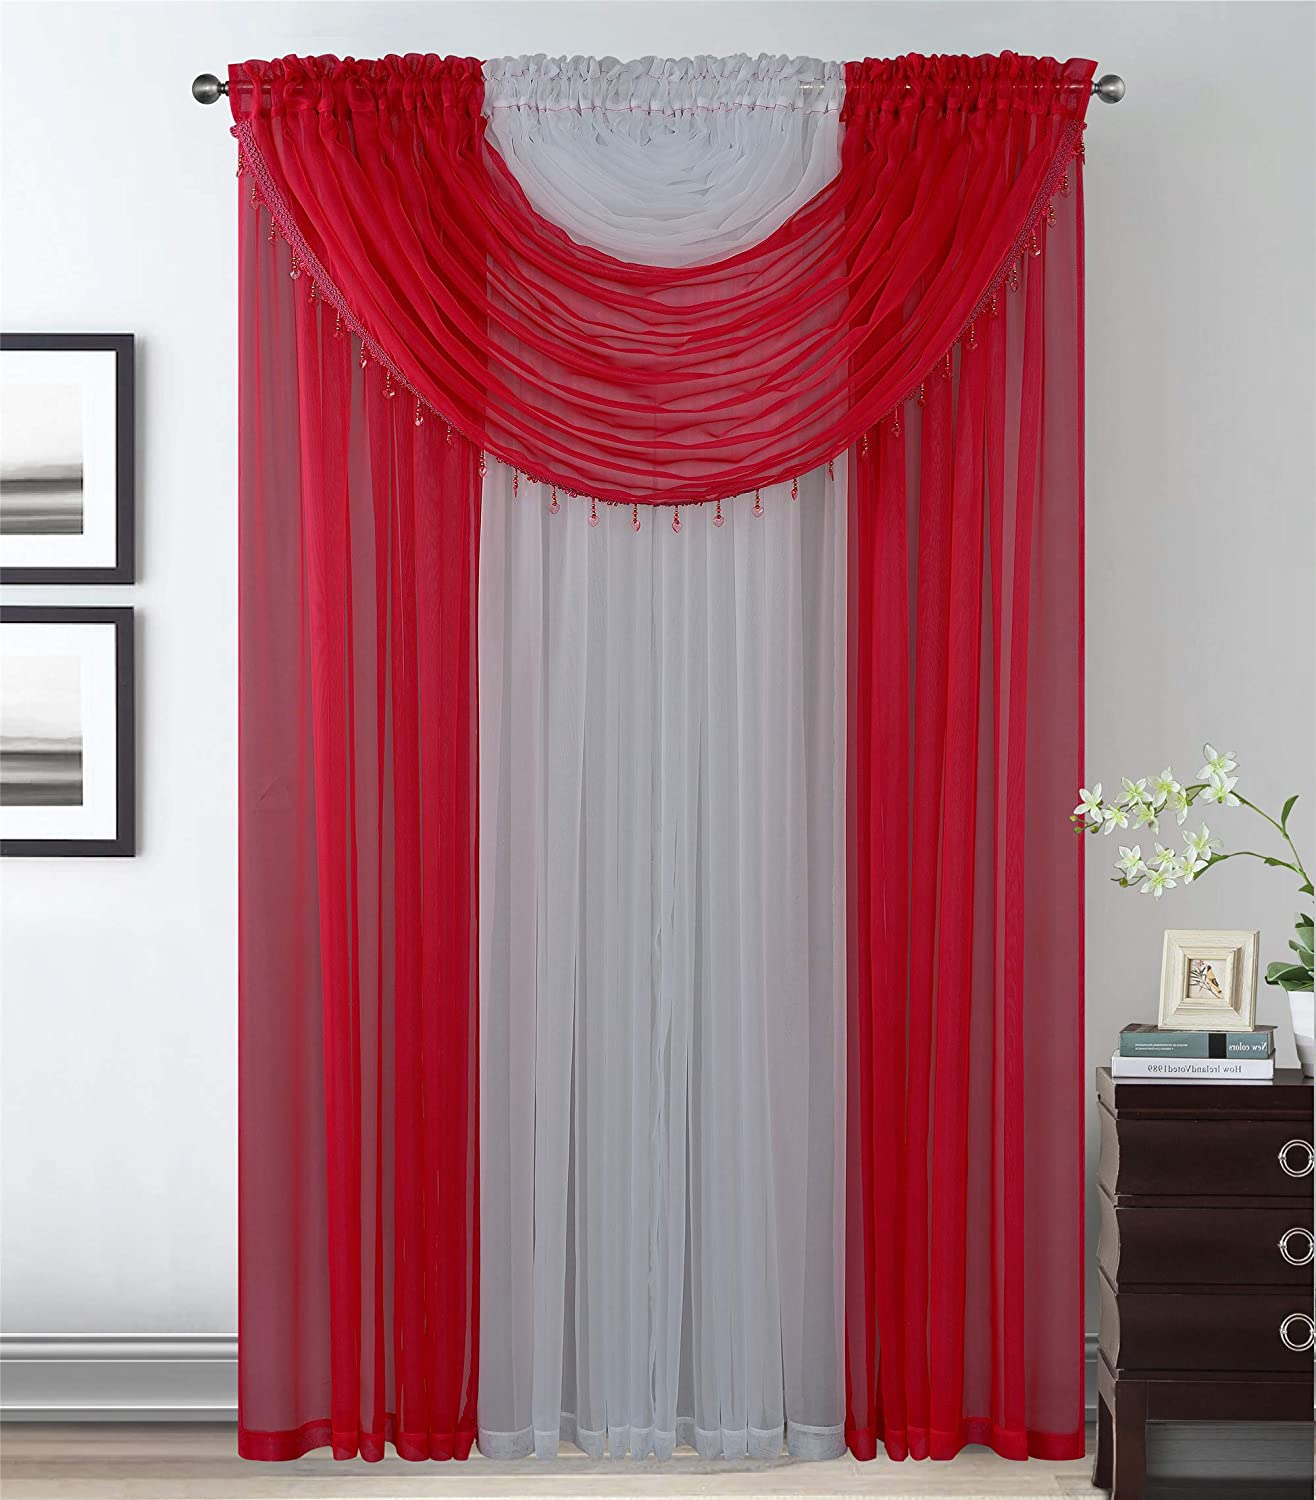 Kids Zone Home Linen 4 Panels with Attached Valances All-in-One Red White Sheer Rod Pocket Curtain Panel 84 Inches Long with Crystal Beads - Window Curtains for Bedroom, Living Room or Dinning Room